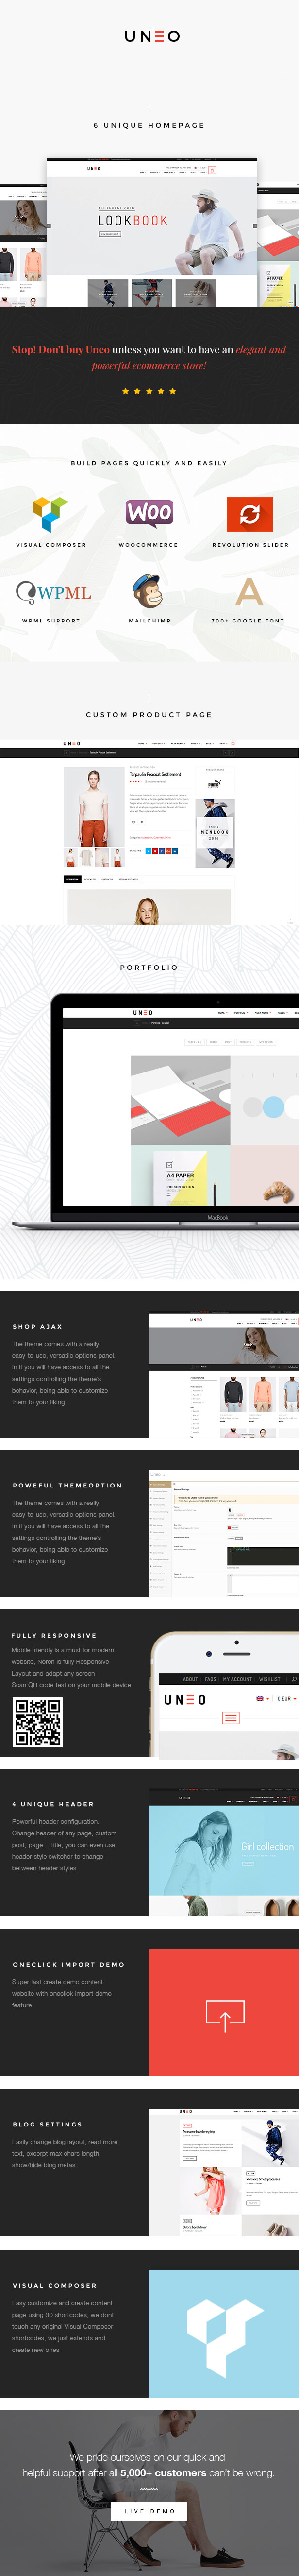 UNEO - Voll AJAX & Eye Caching WooCommerce WordPress Layout (AJAX Warenkorb, AJAX Filter, AJAX Sortierung)